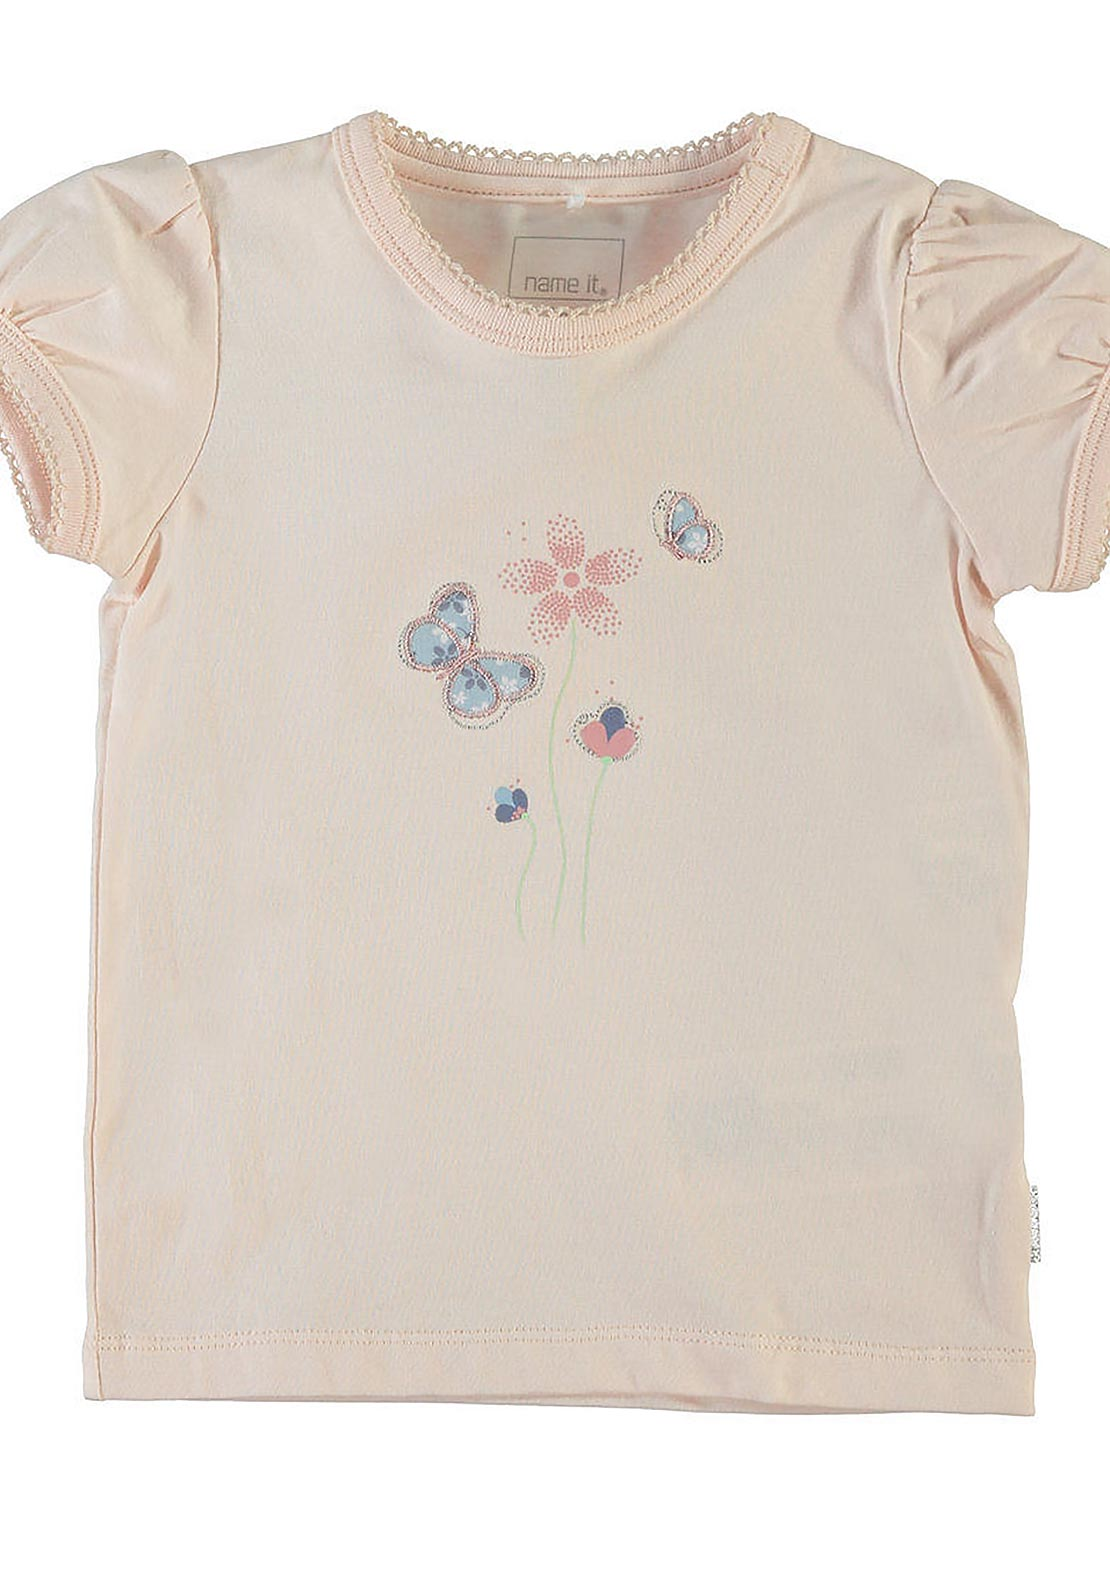 Name It Baby Girls Bella Butterfly Embroidered Top, Pink Pearl